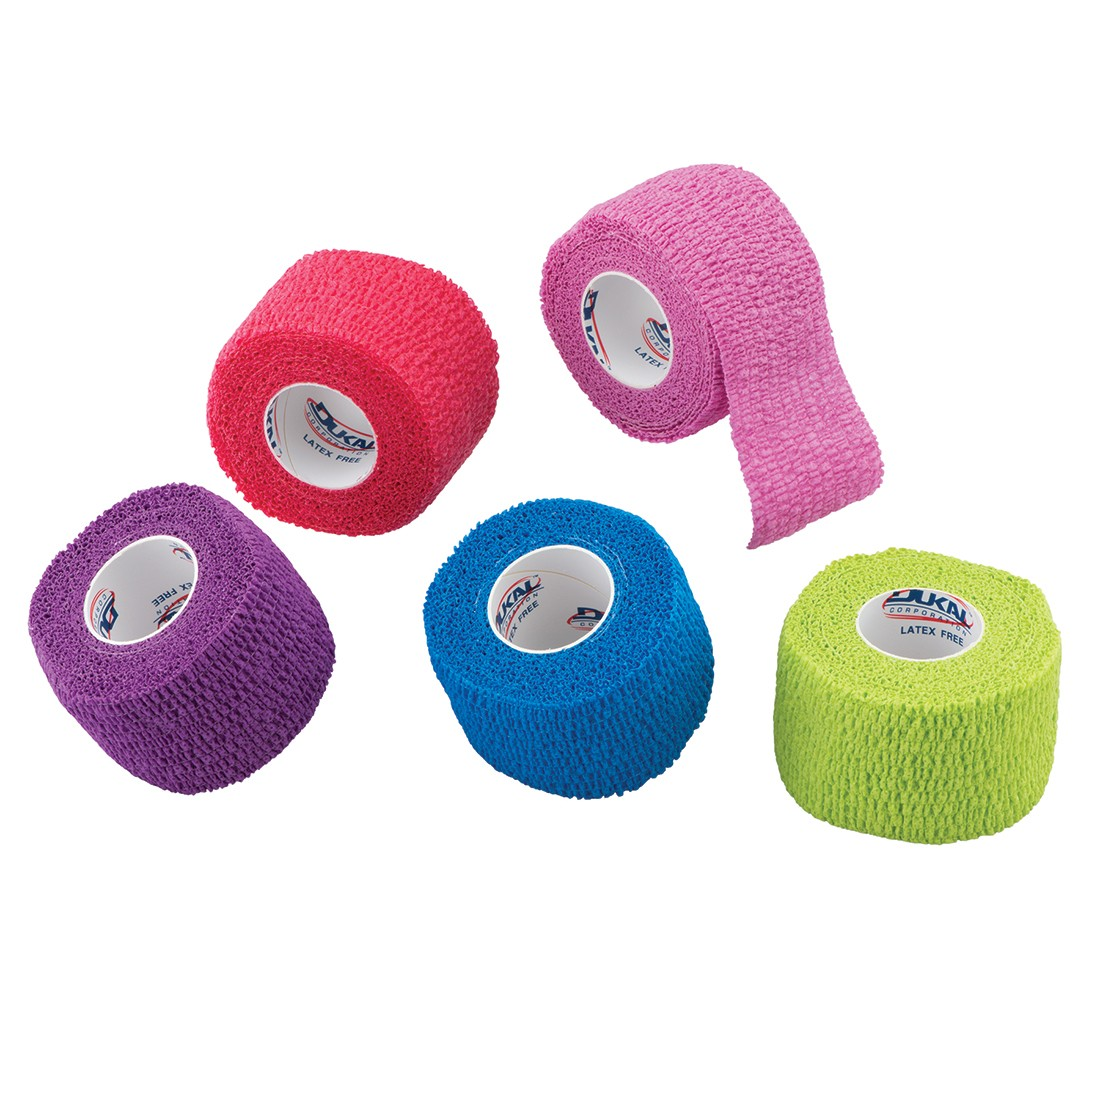 """1 1/2"""" Assorted Color Cohesive Bandage Wrap Rolls [image]"""